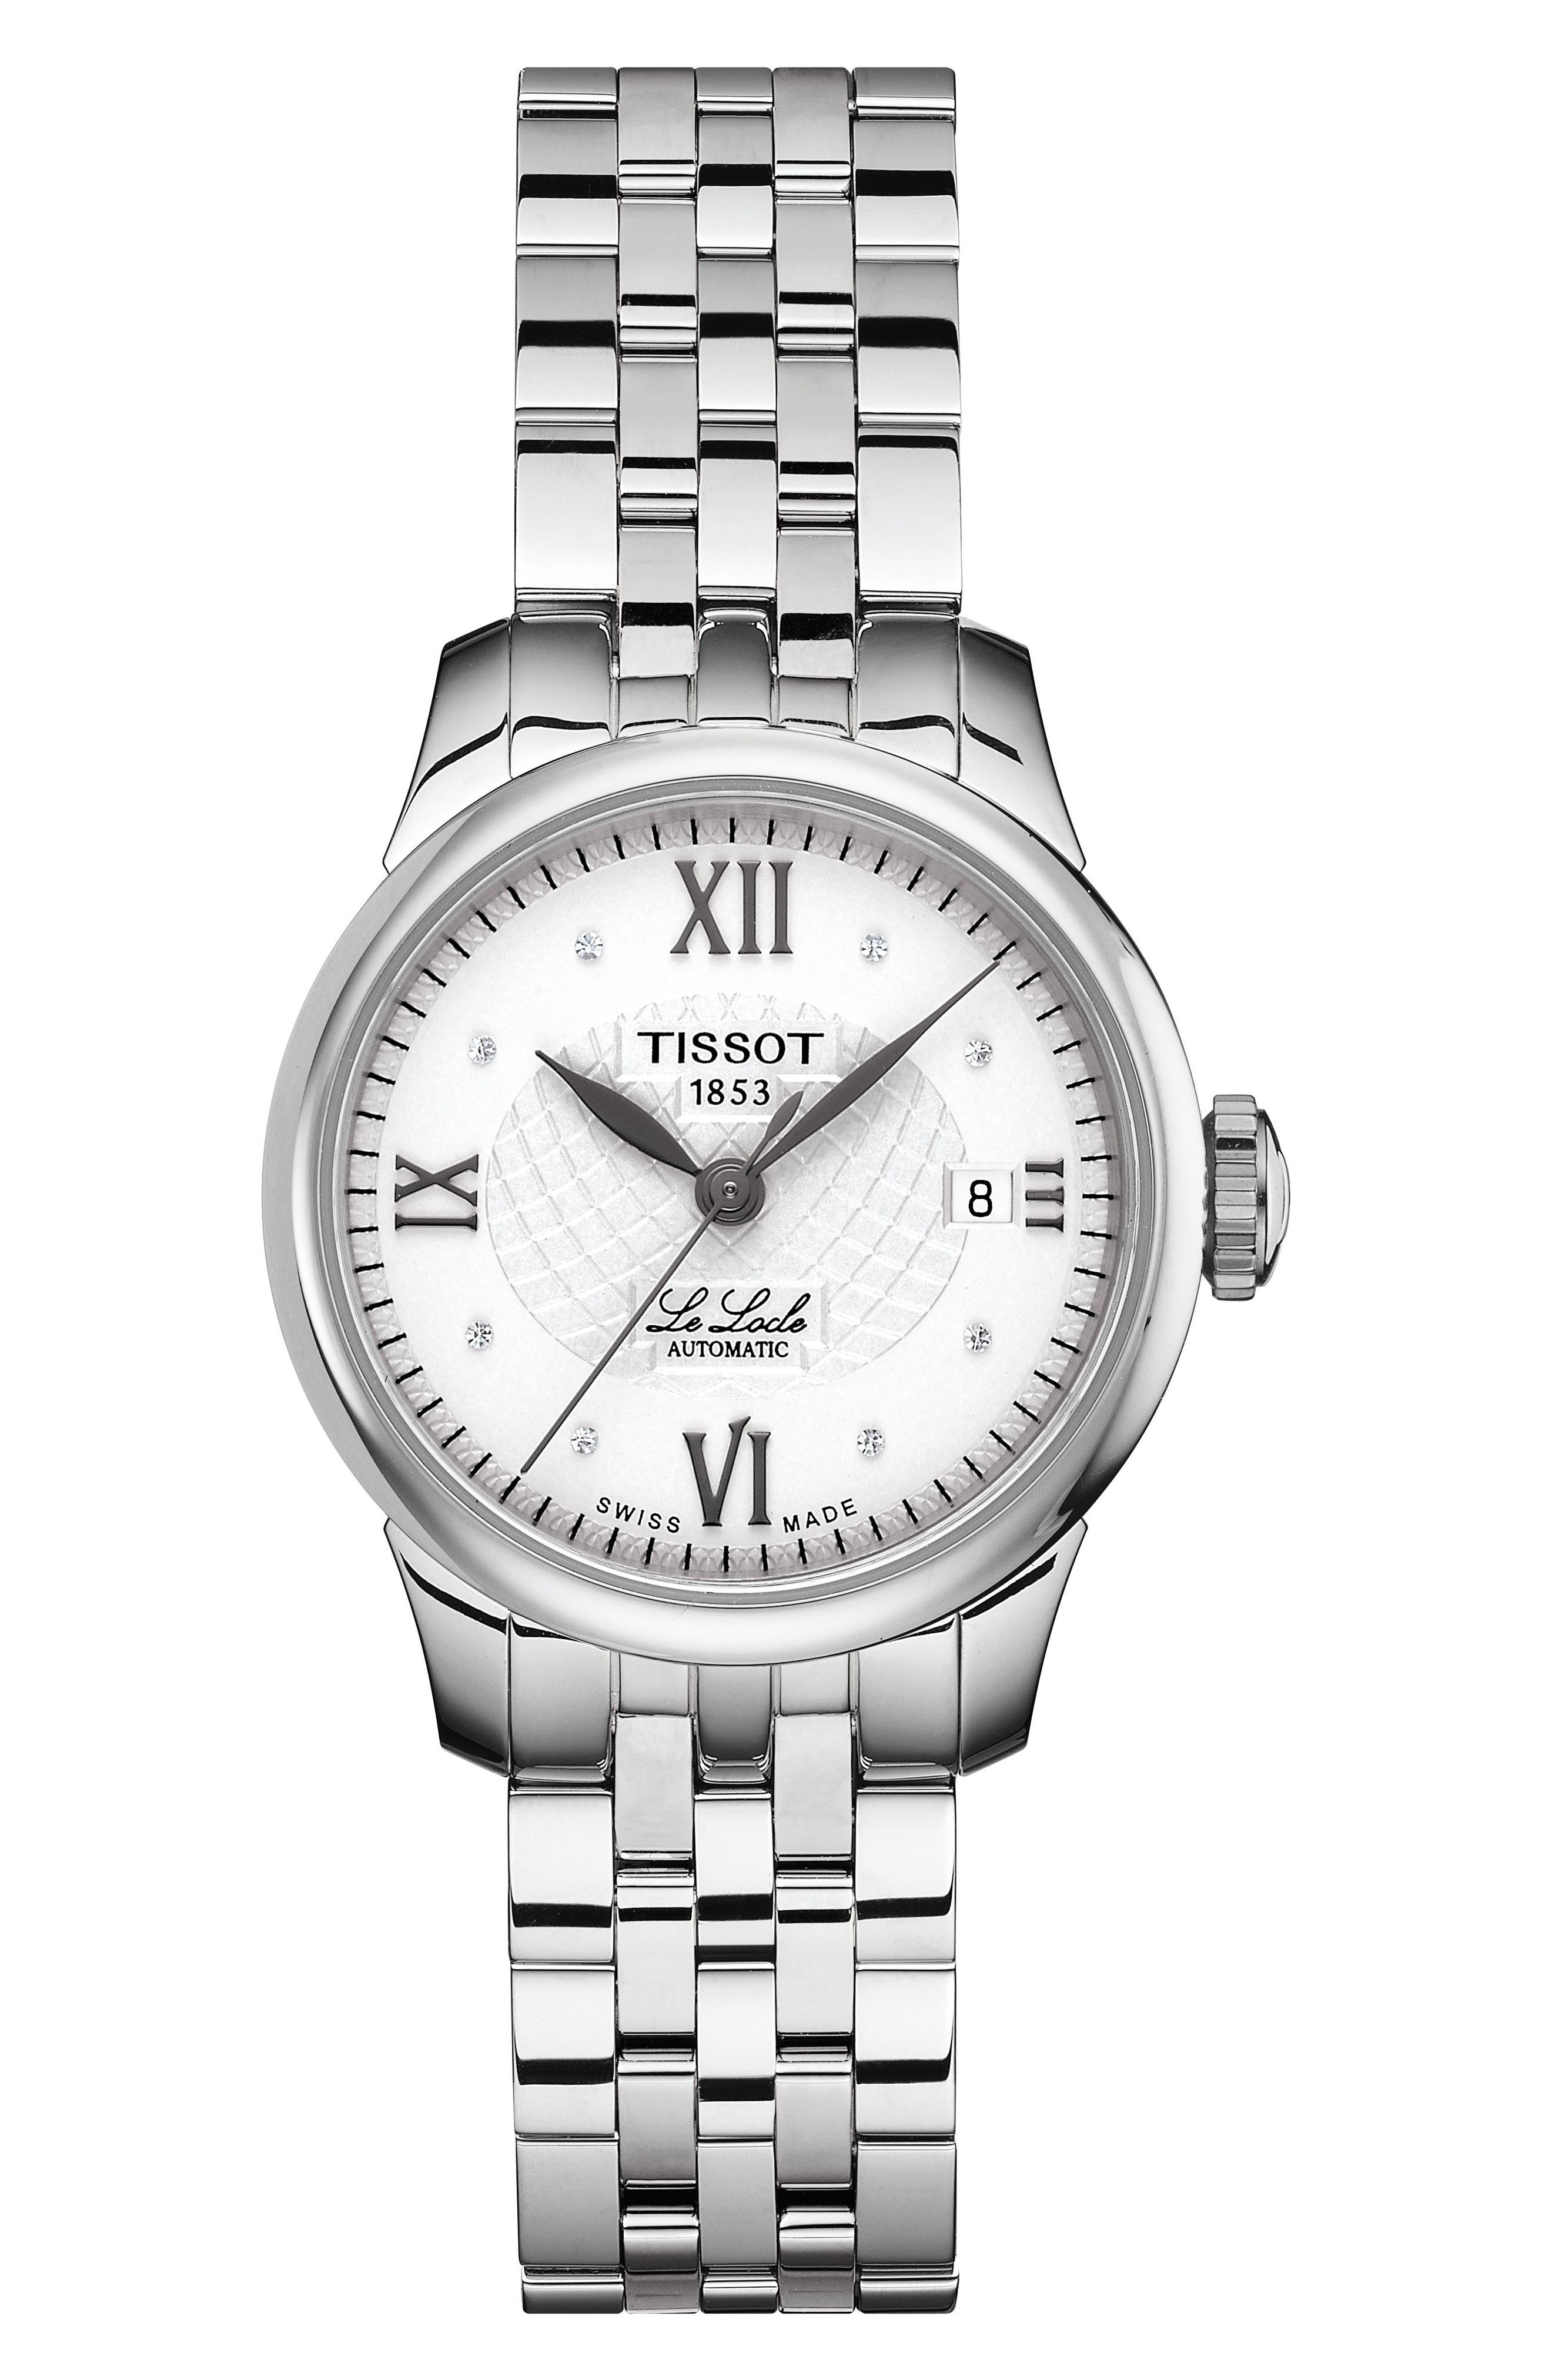 TISSOT Le Locle Automatic Lady Diamond Dial Bracelet Watch, 25Mm in Silver